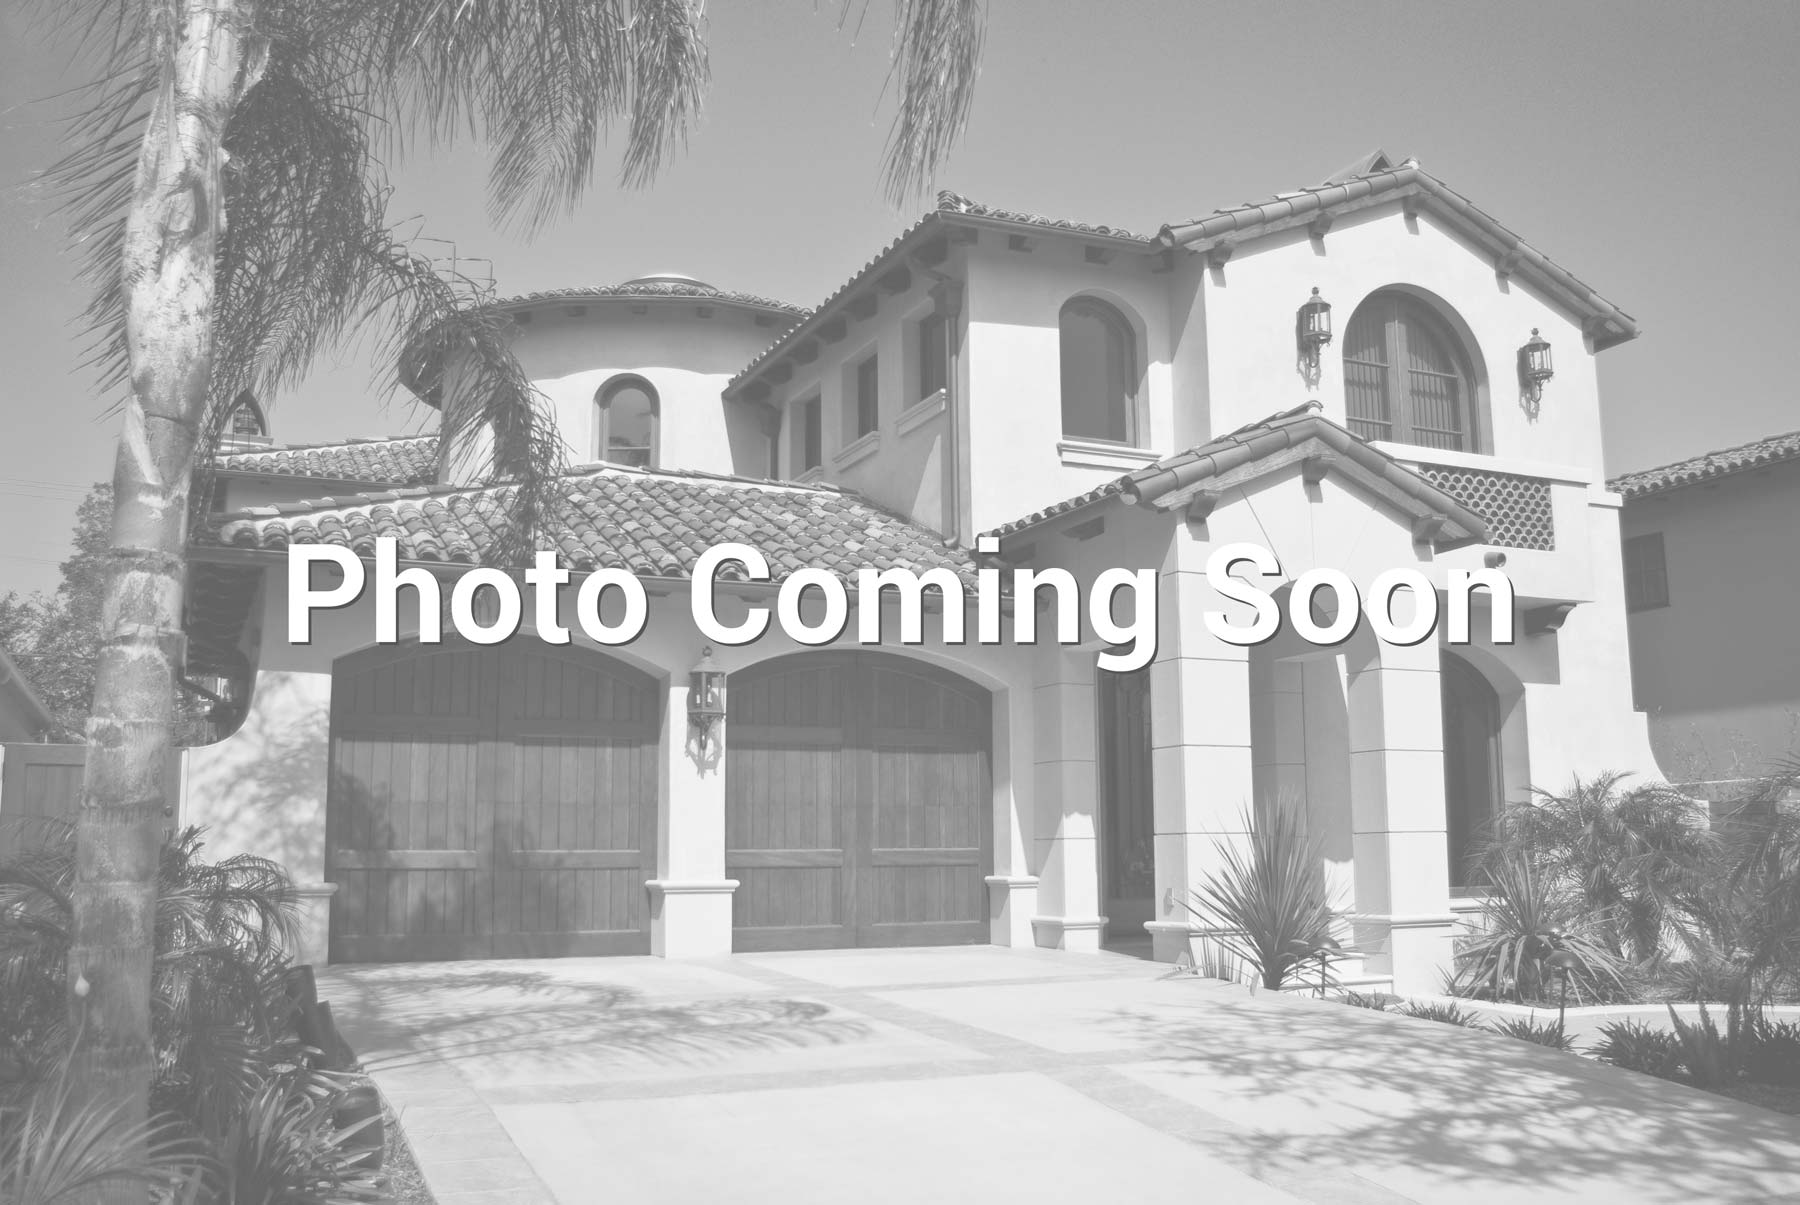 $390,000 - 3Br/3Ba - Home for Sale in Desert Ridge Superblock 11 Parcel 1b, Phoenix